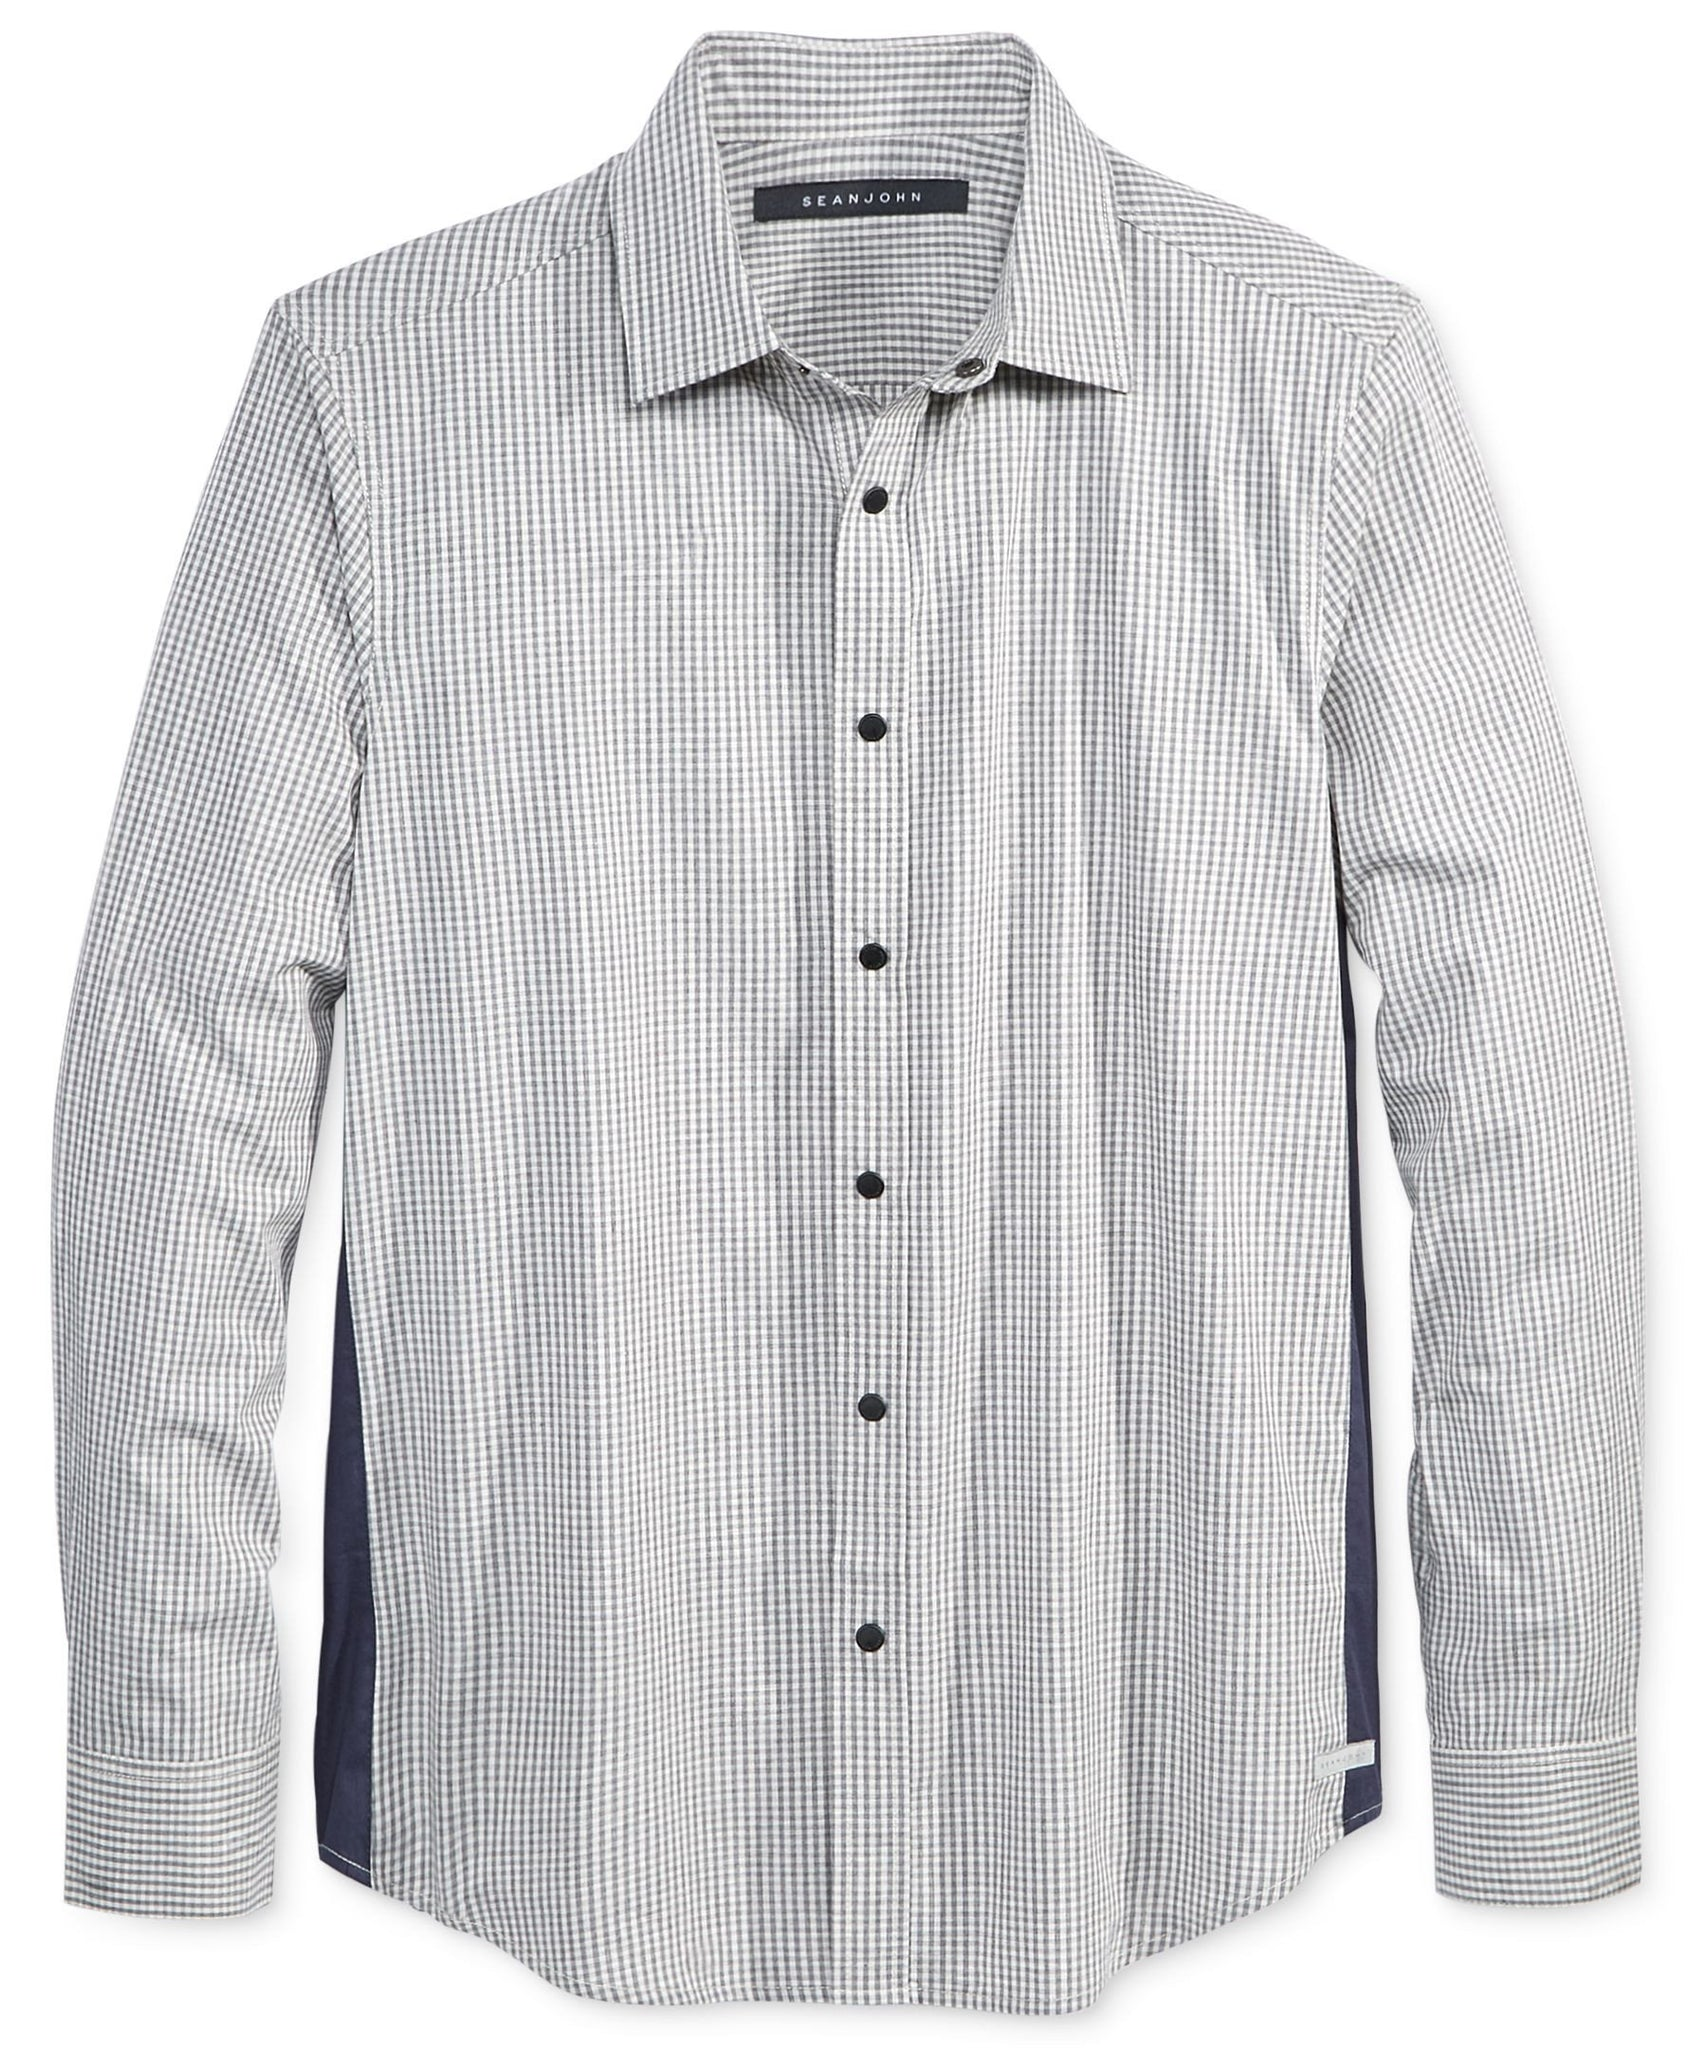 Sean John Men's Side Detail Shirt